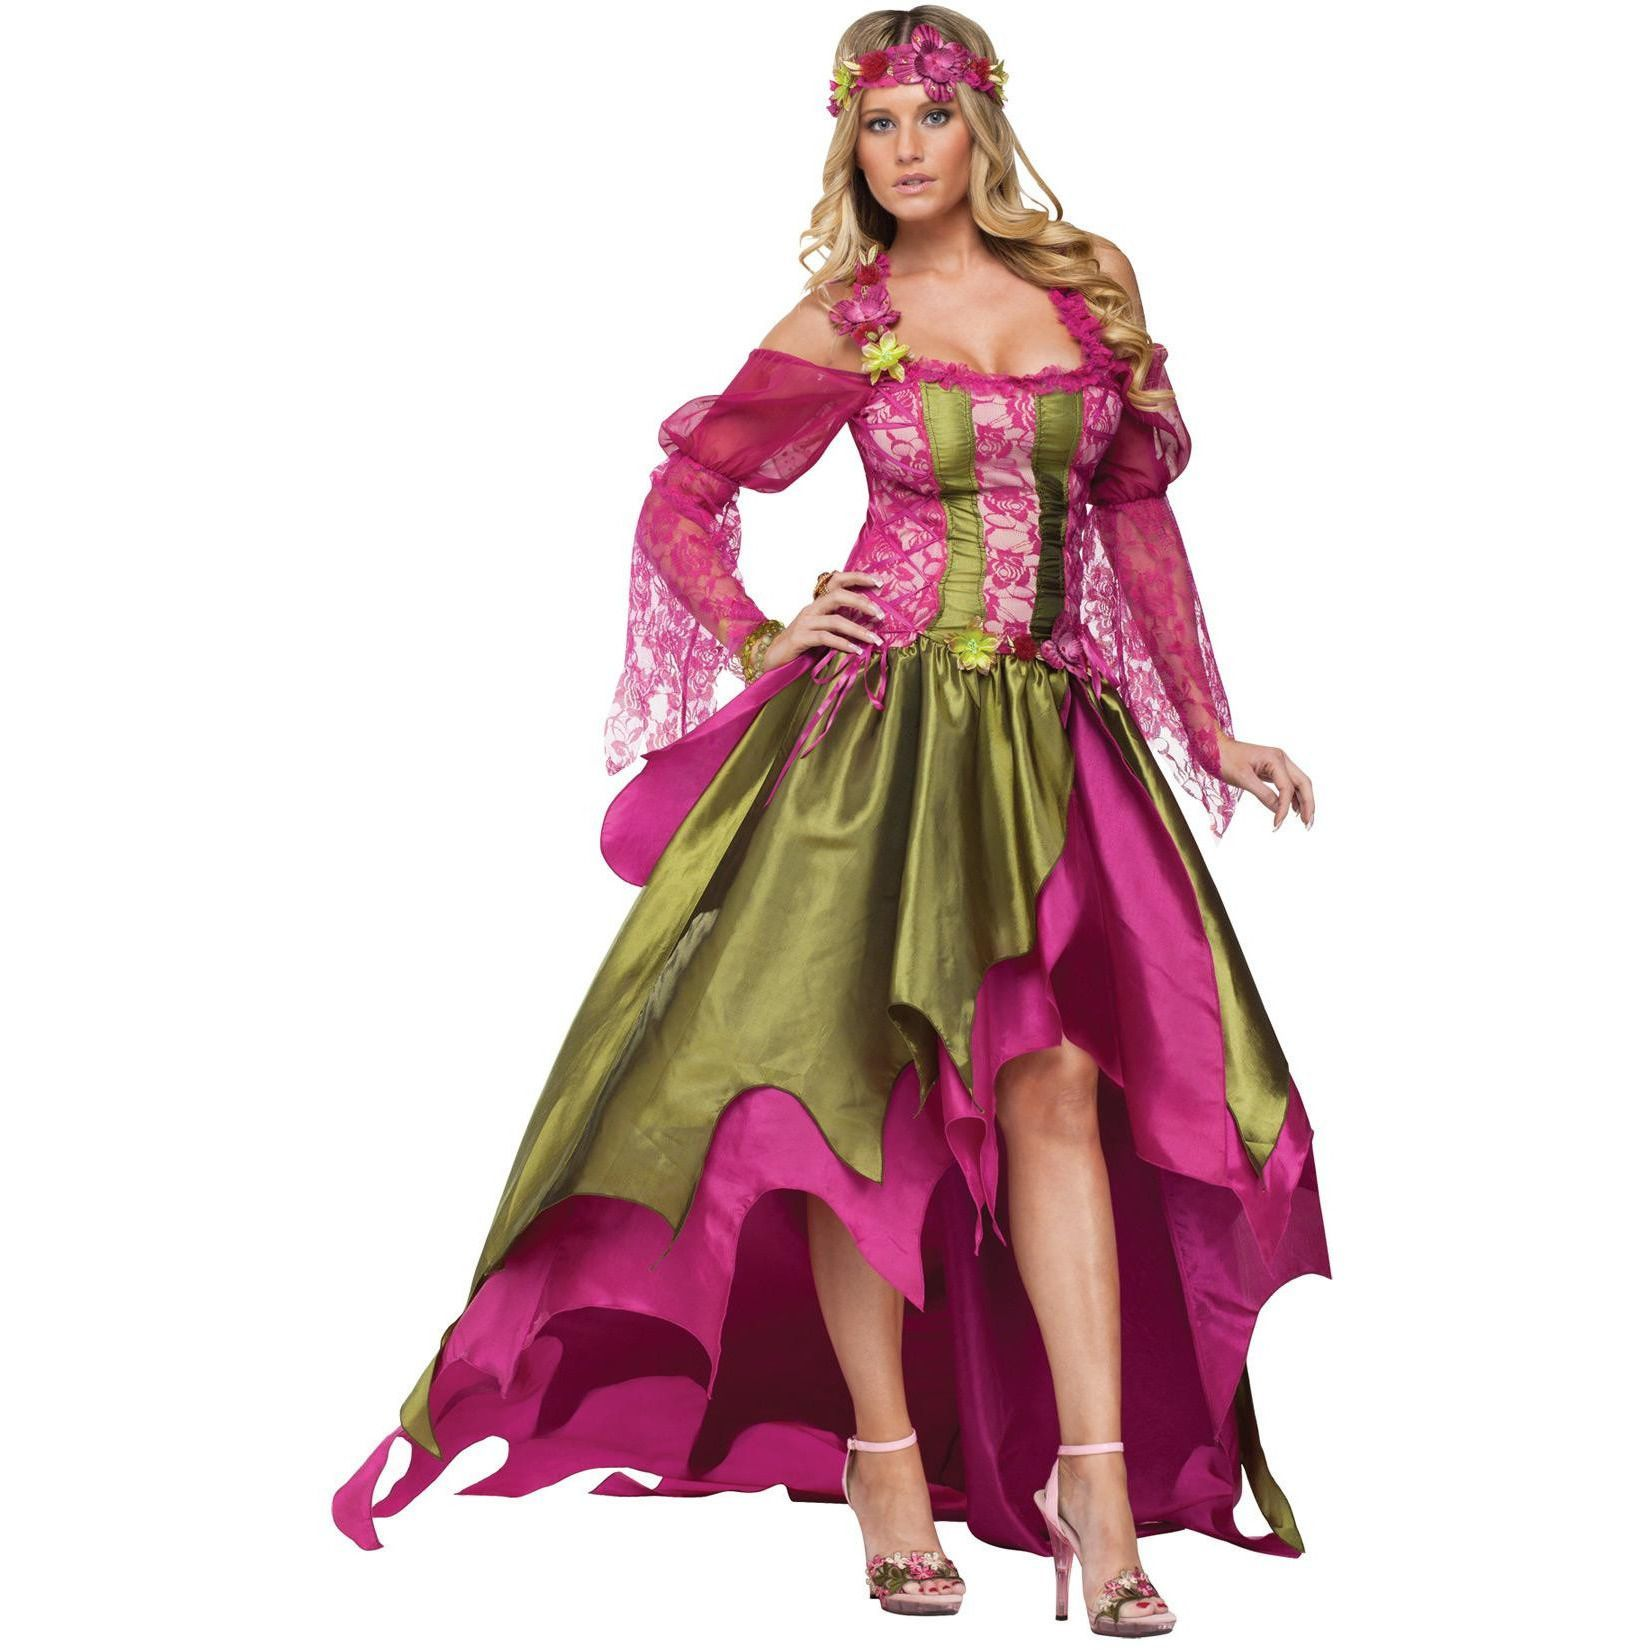 Fairy Queen Adult Large 1214 Weibliche kostüme, Nymphe